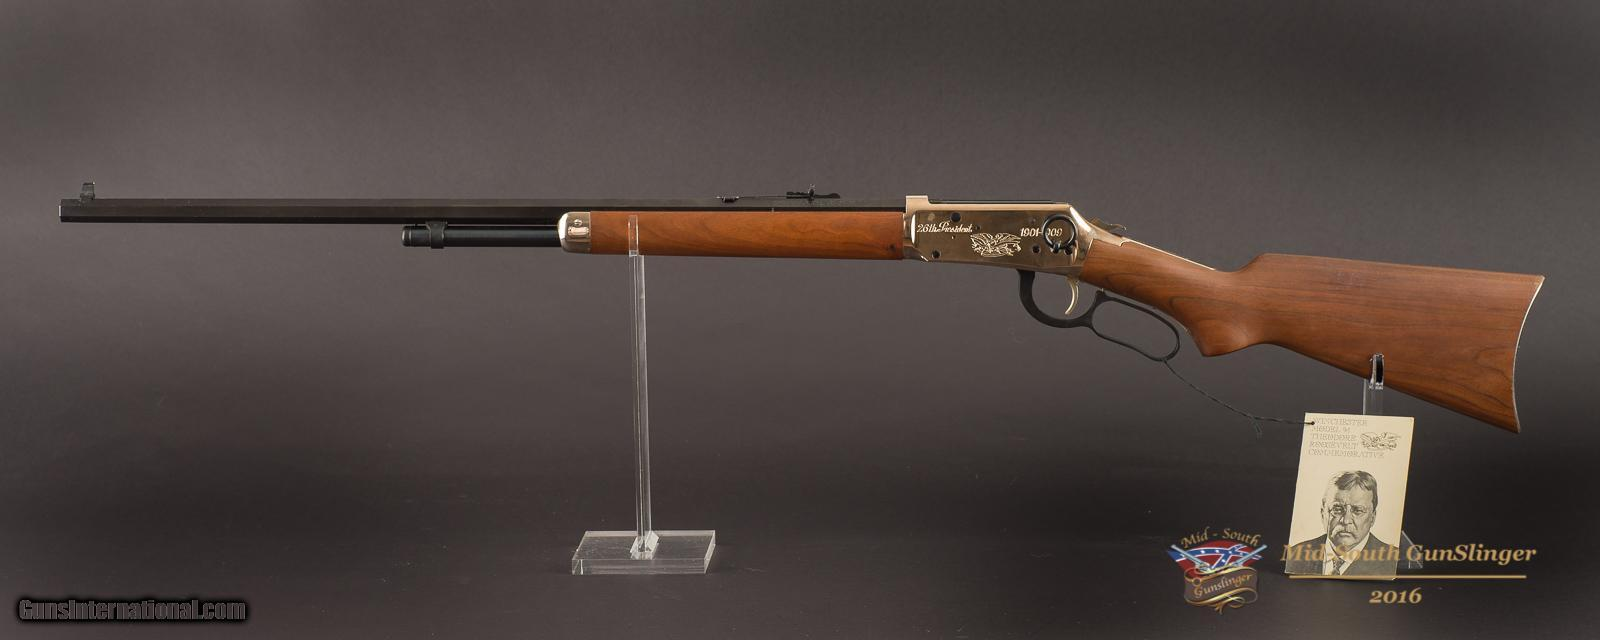 Teddy roosevelt guns to be displayed at nra national - Winchester Model 94 Winchester Model 94 Theodore Roosevelt Commemorative Rifle 30 30 Winchester 26 Octagon Barrel No Cc Fee